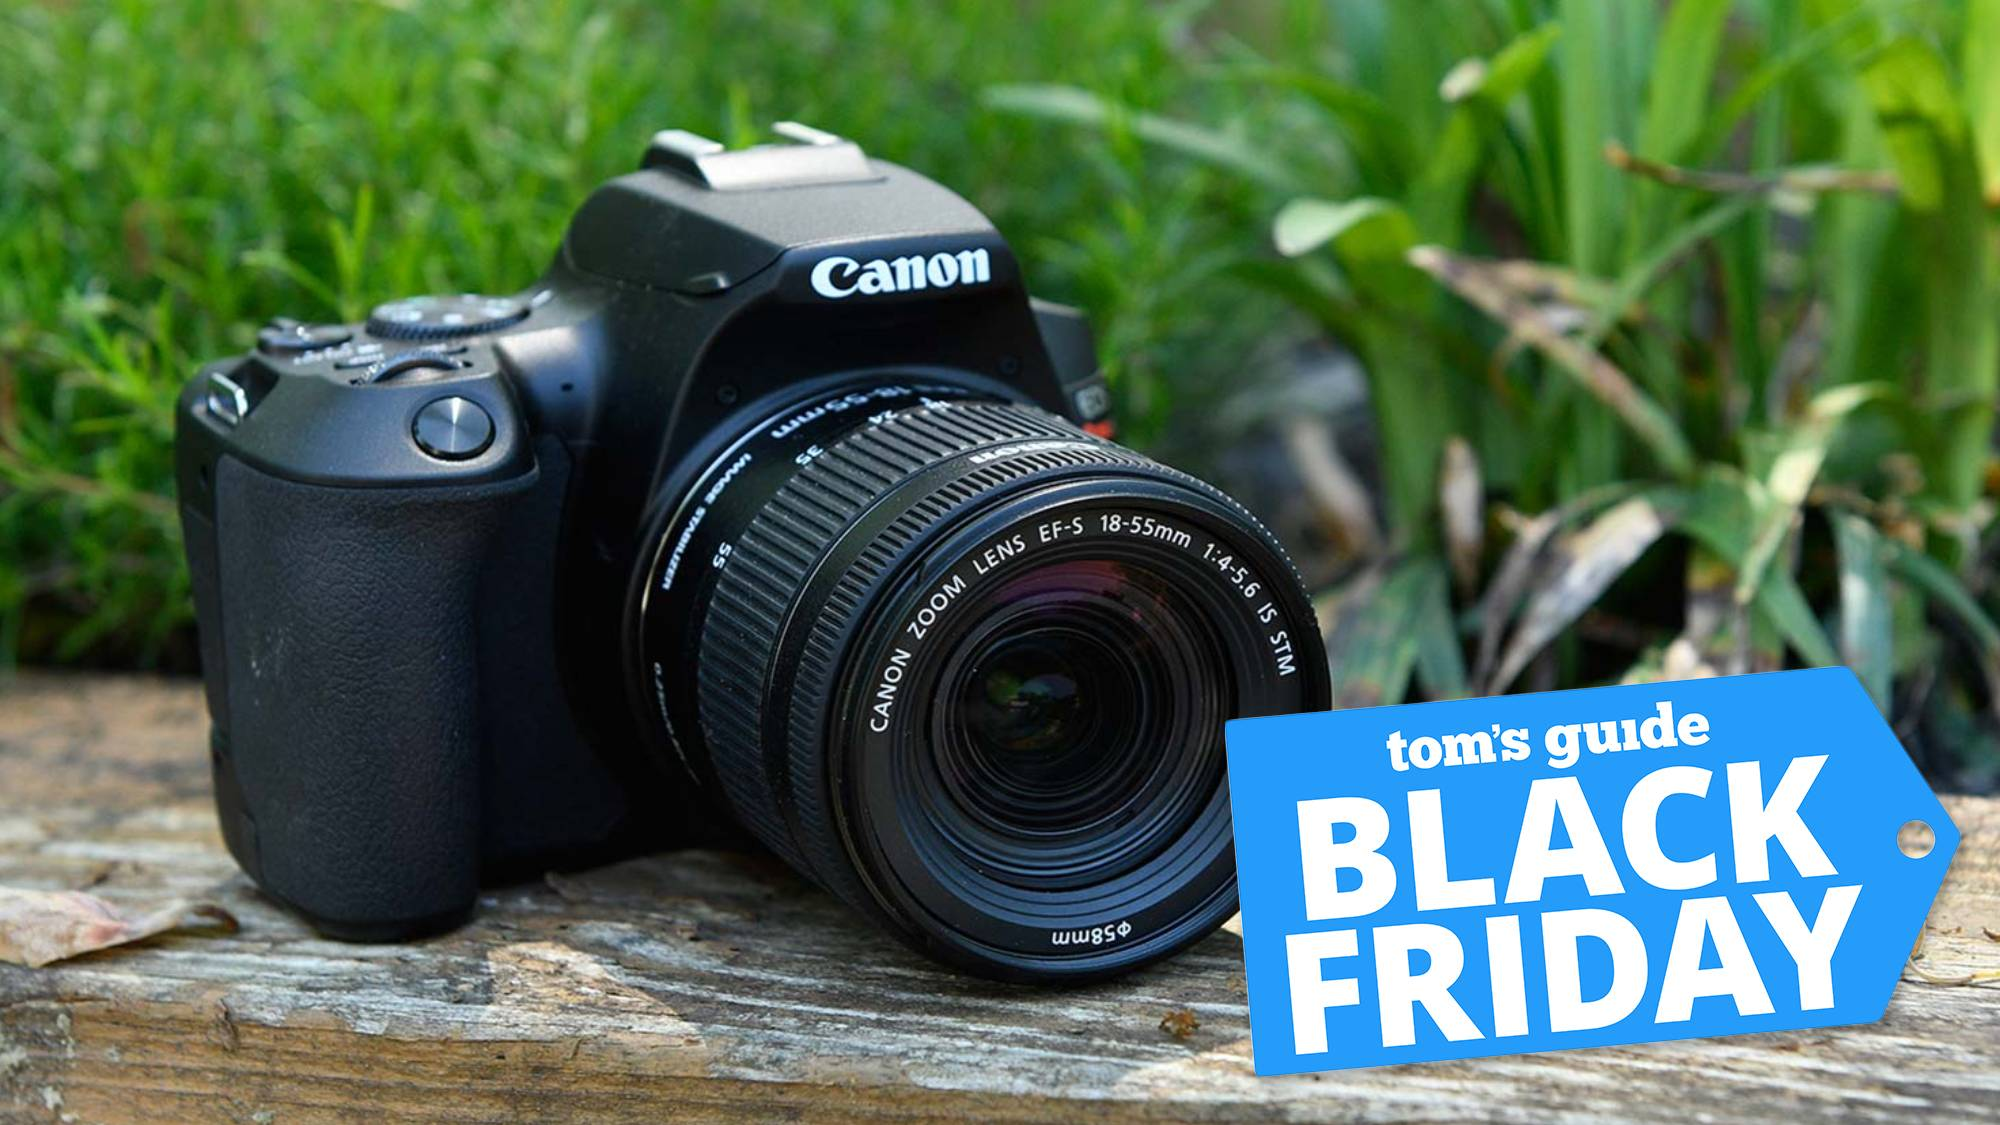 Best Black Friday Camera Deals 2020 Save On Canon Nikon Sony Gopro And More Tom S Guide